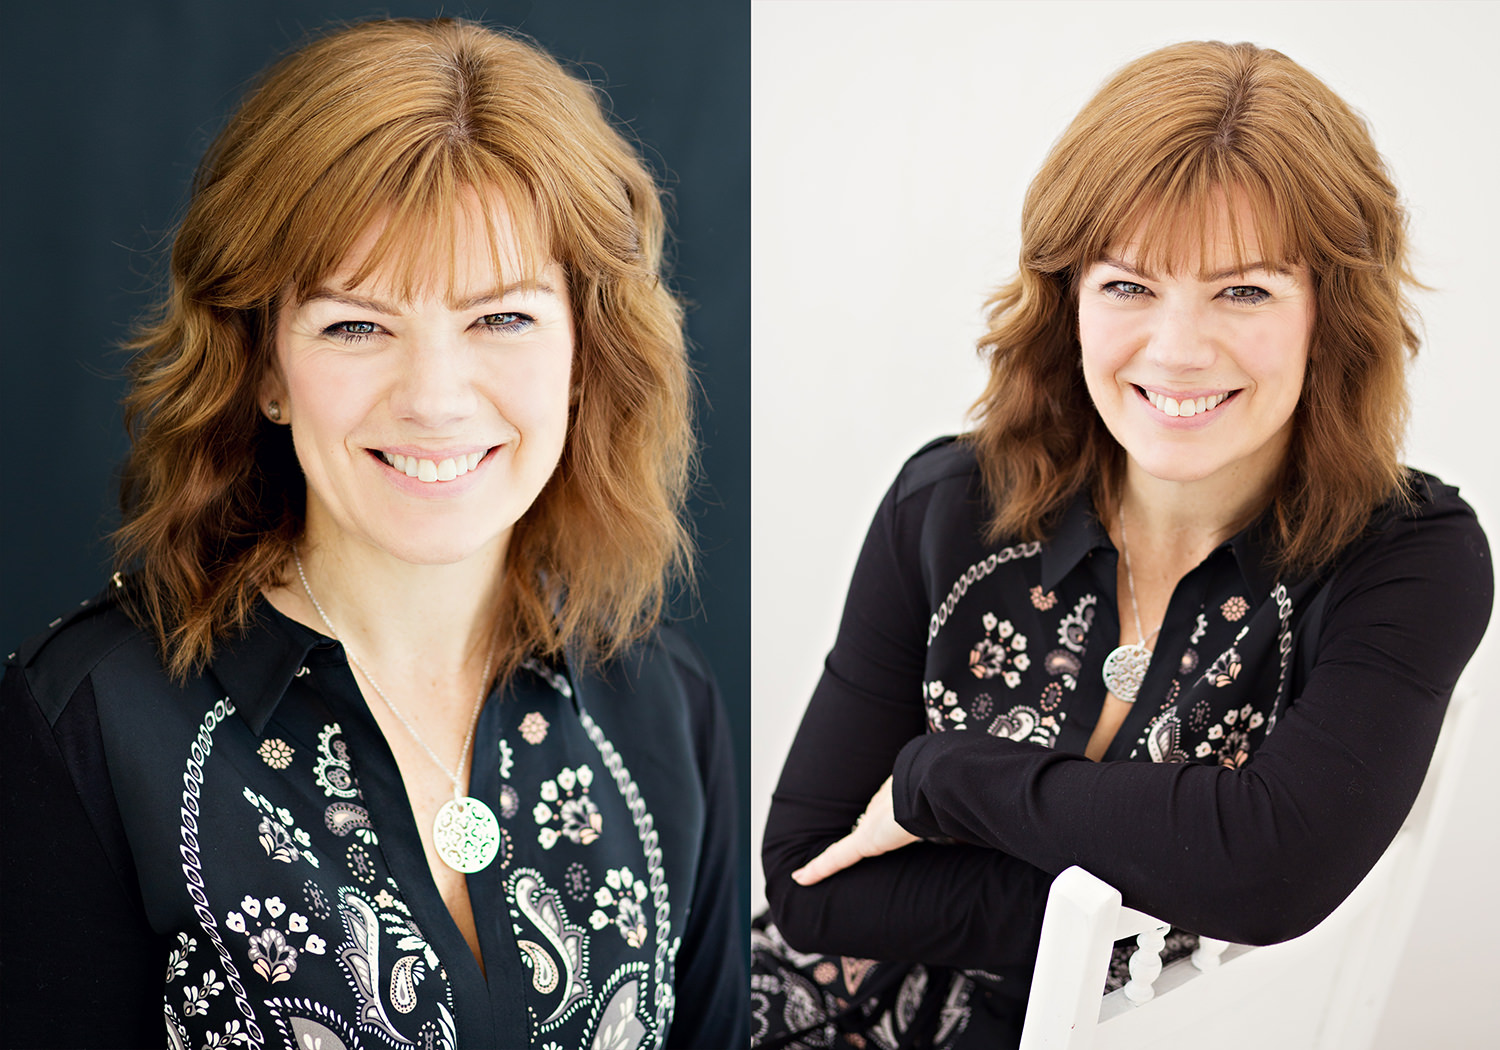 Headshots by Gemma Griffiths Photography